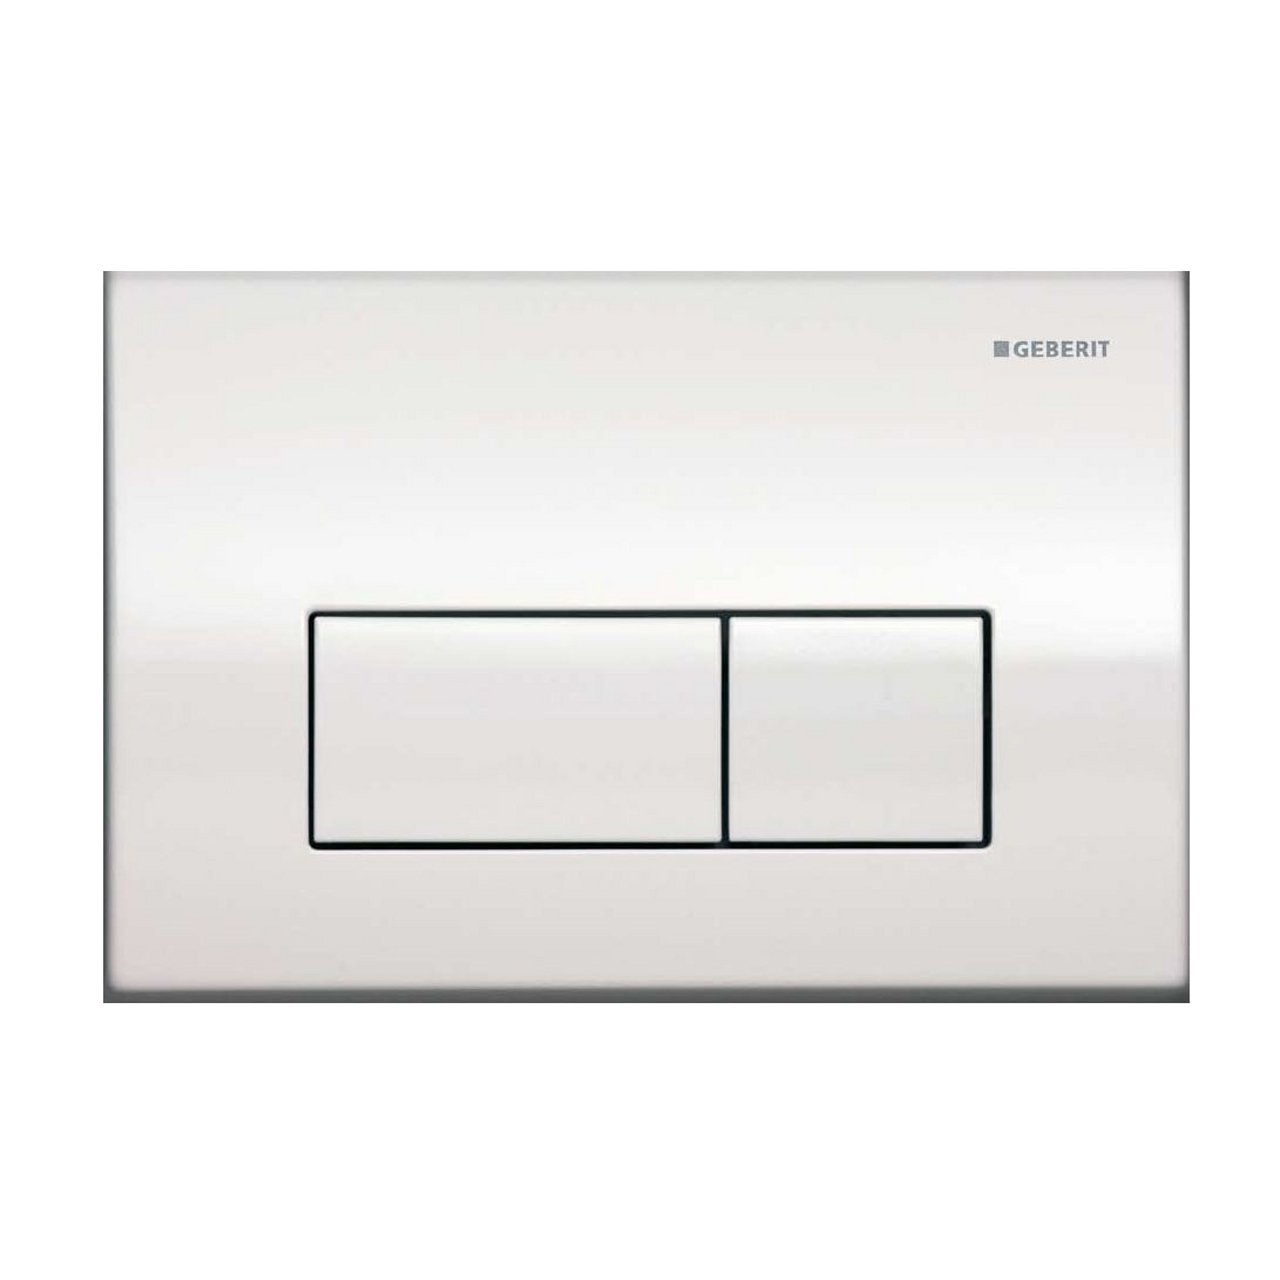 Geberit kappa 20 dn44 hitoiro for Geberit flush